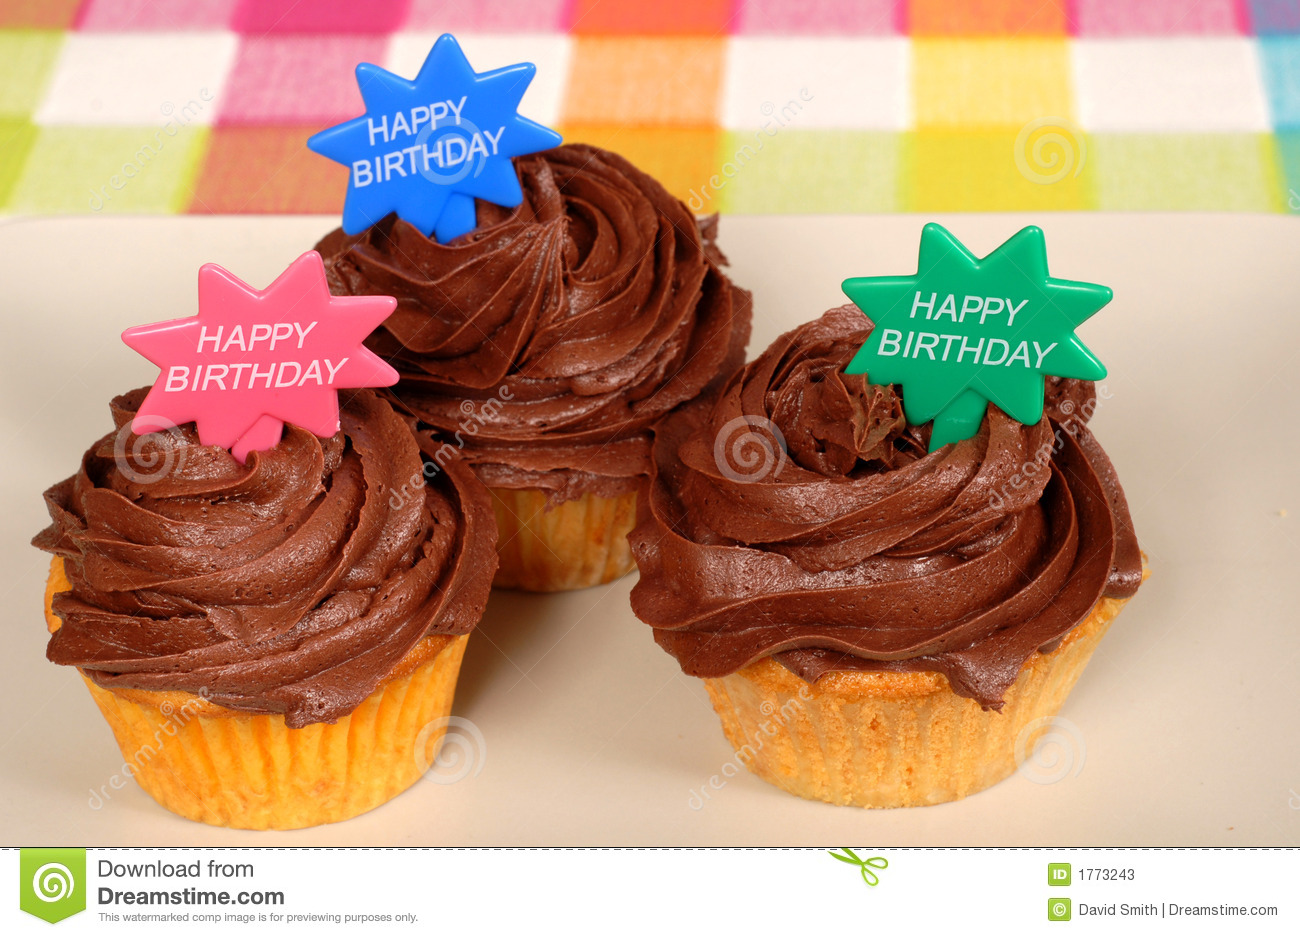 Chocolate Frosted Cupcakes Stock Image | CartoonDealer.com ...